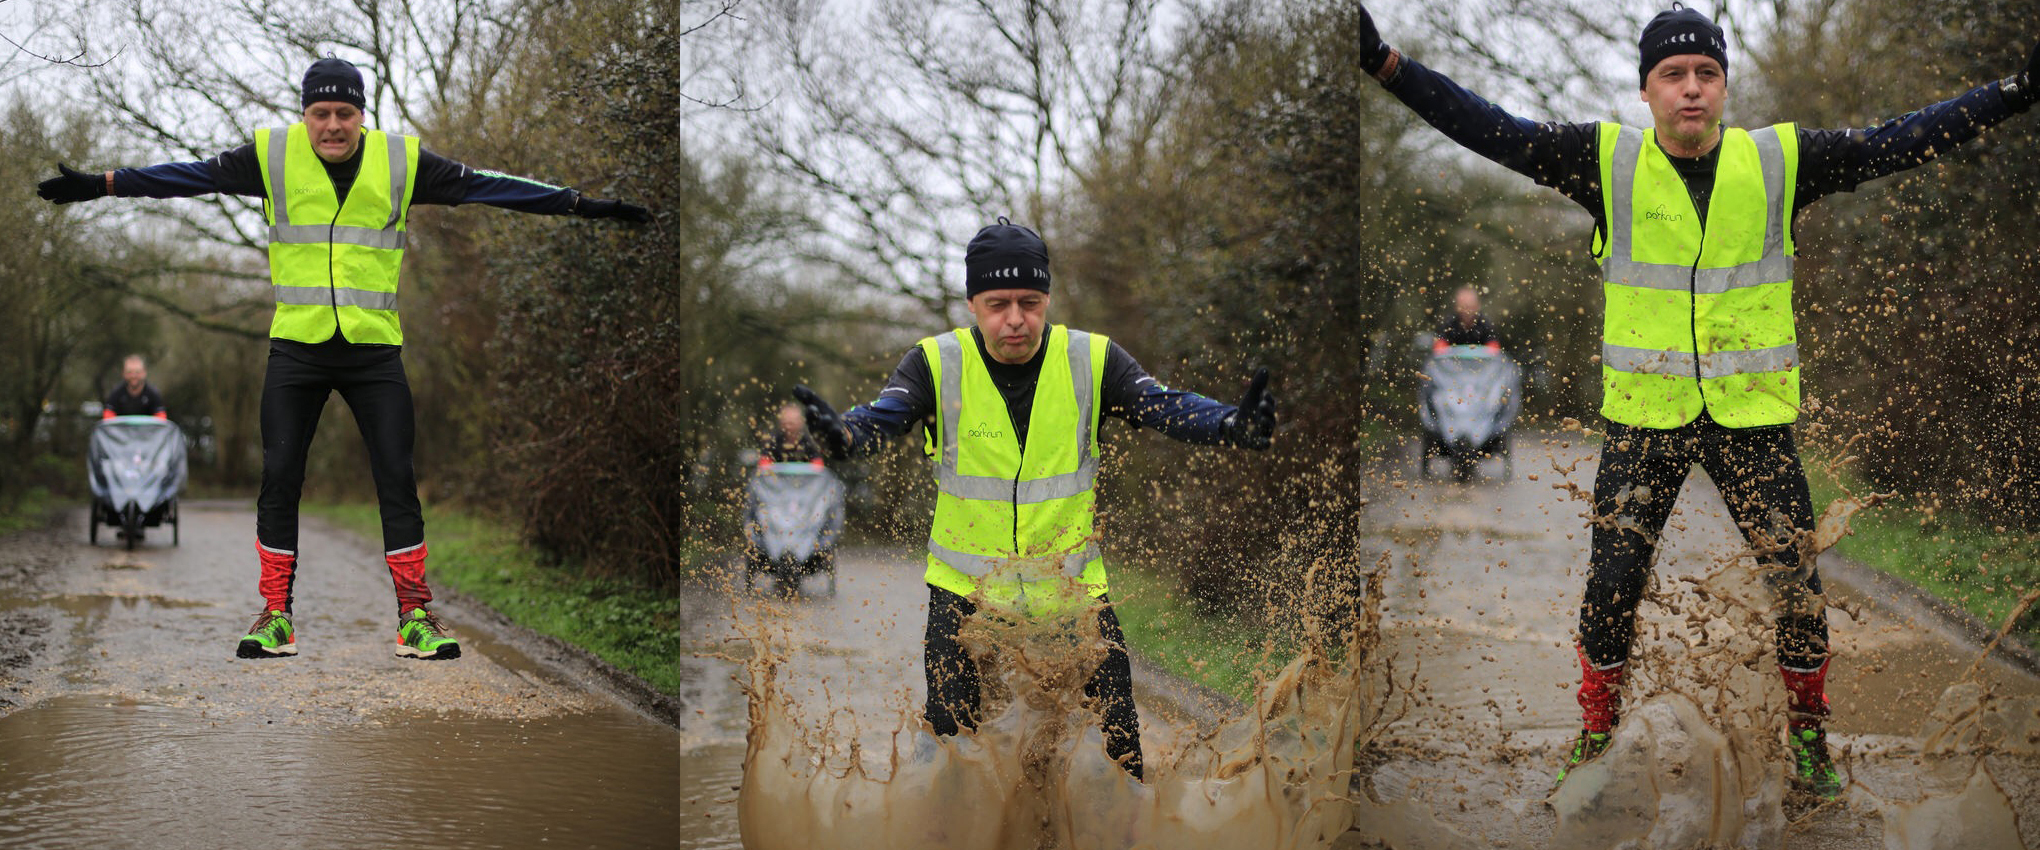 3 images of Ian. Left:  jumping high above a muddy puddle. Centre: landing with a big splash in the puddle. Right: a second big splash in the puddle.